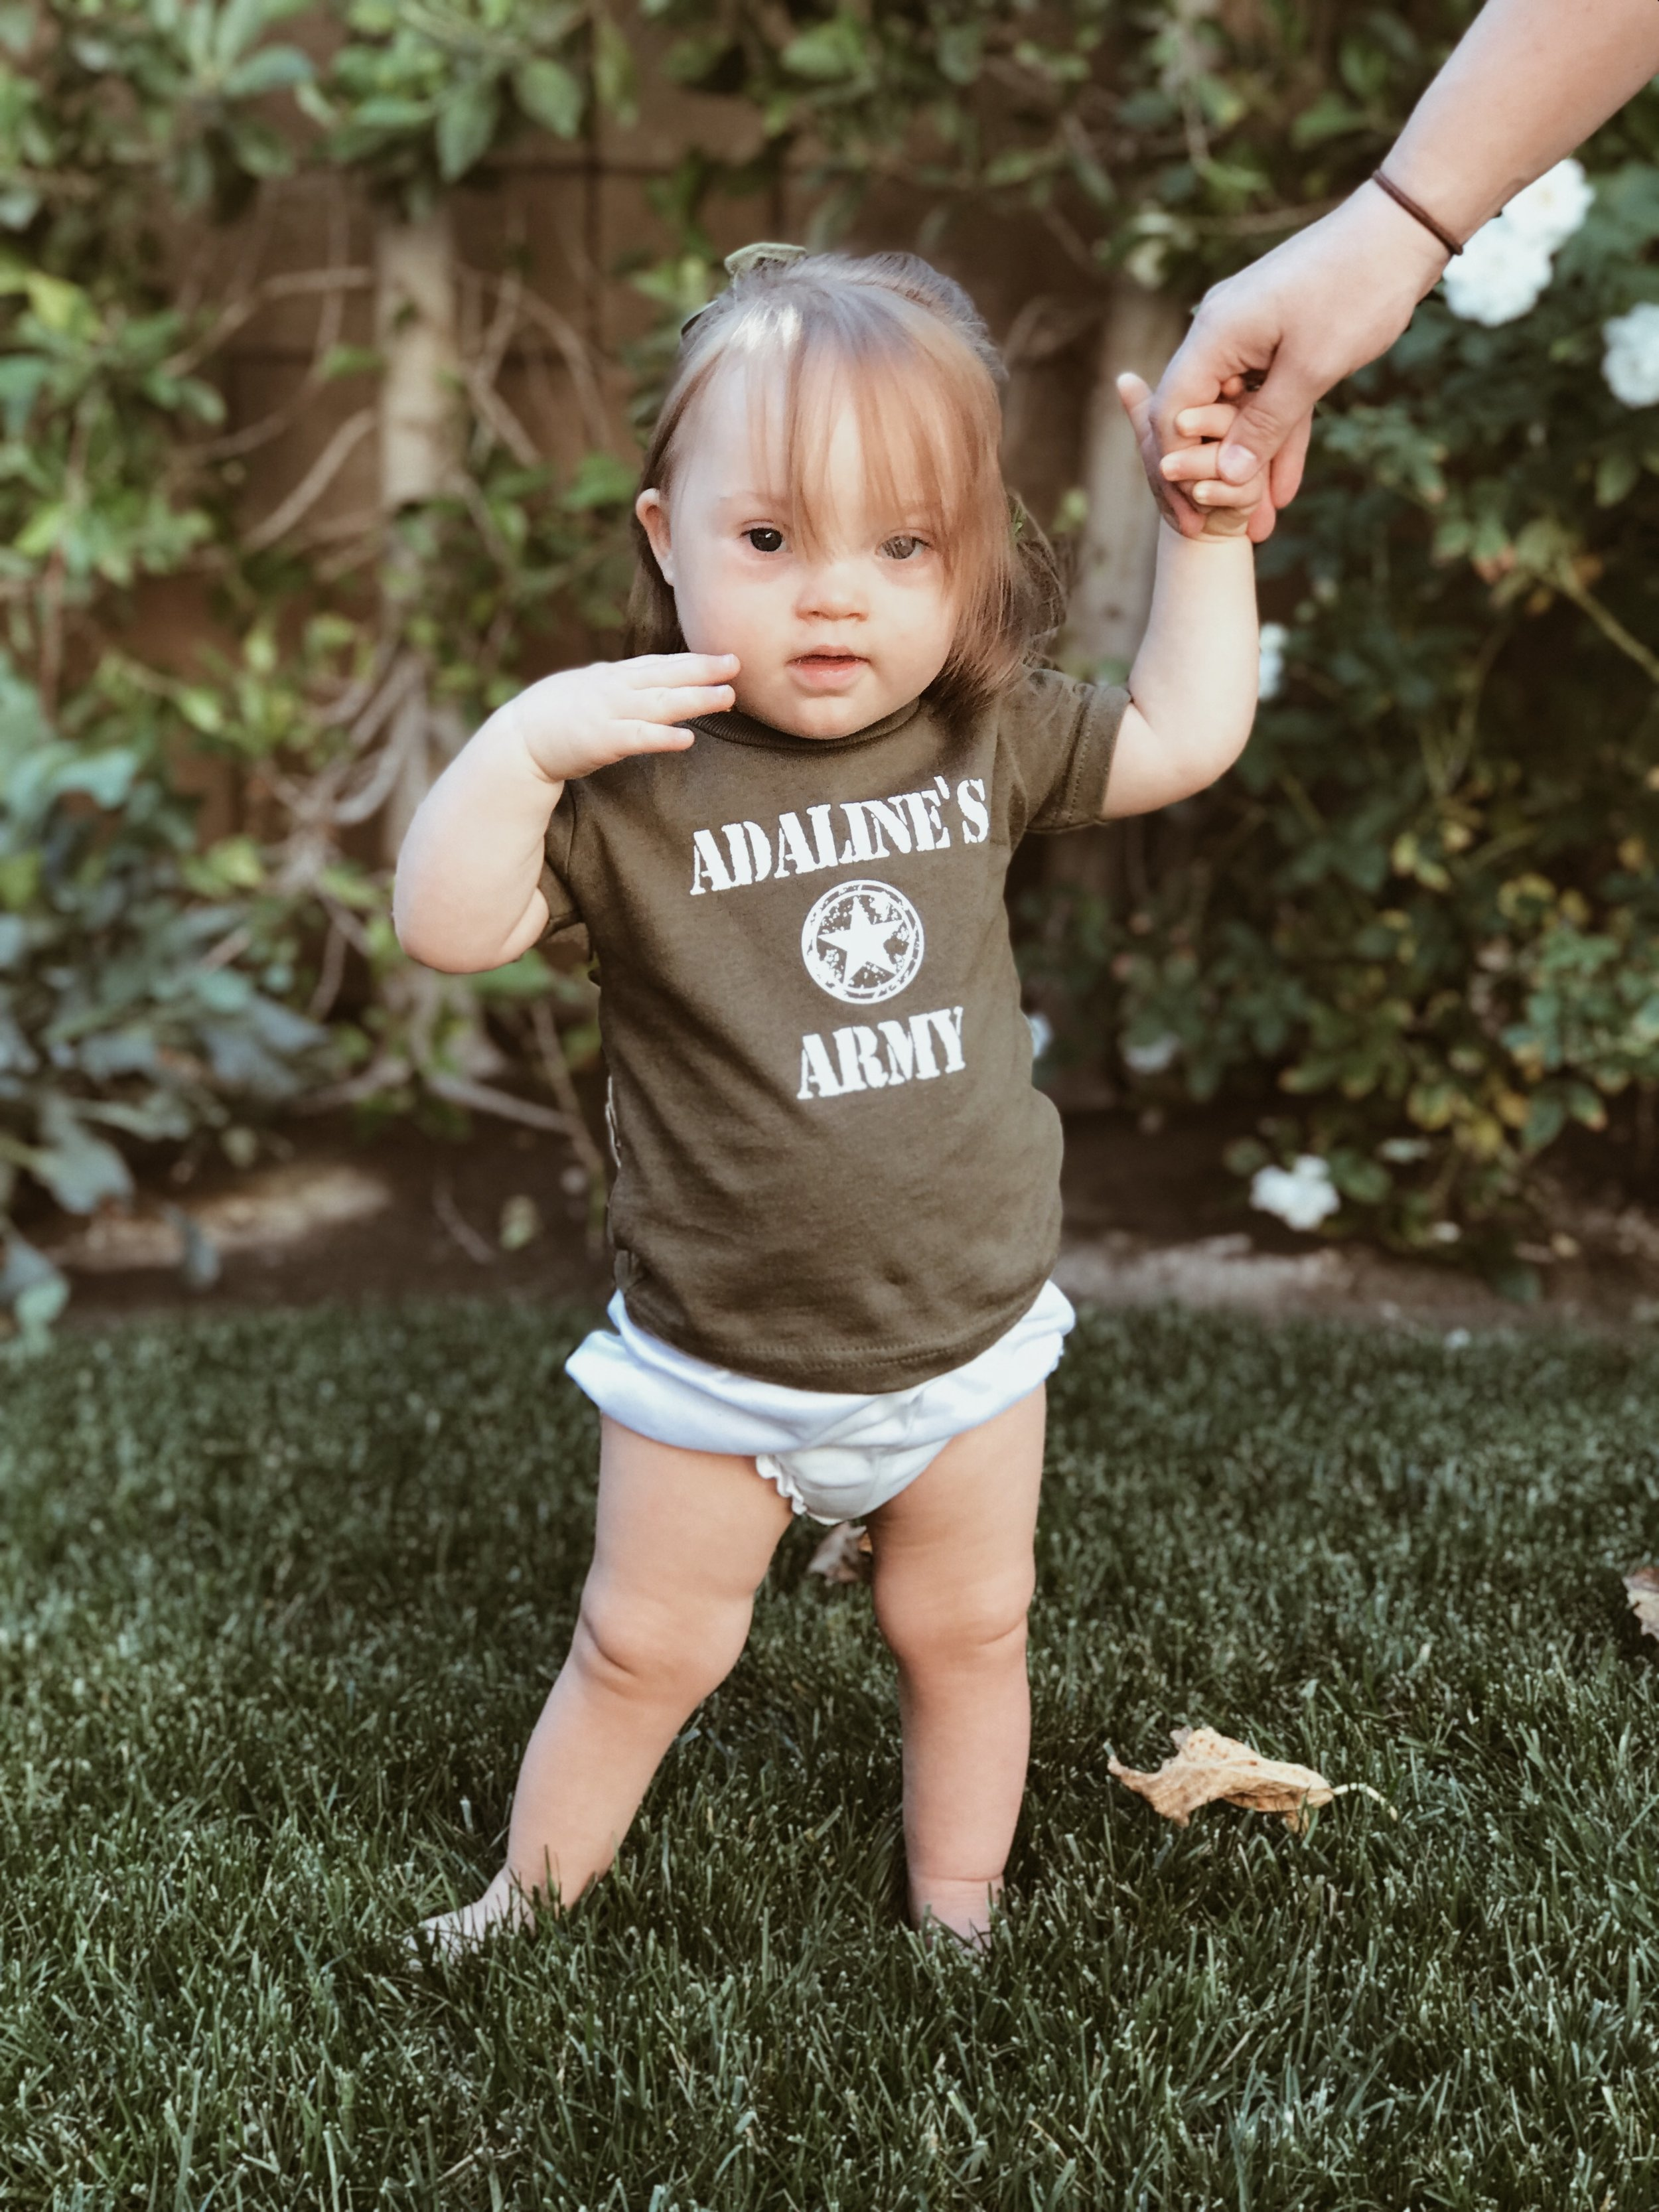 adaline army front baby.JPG